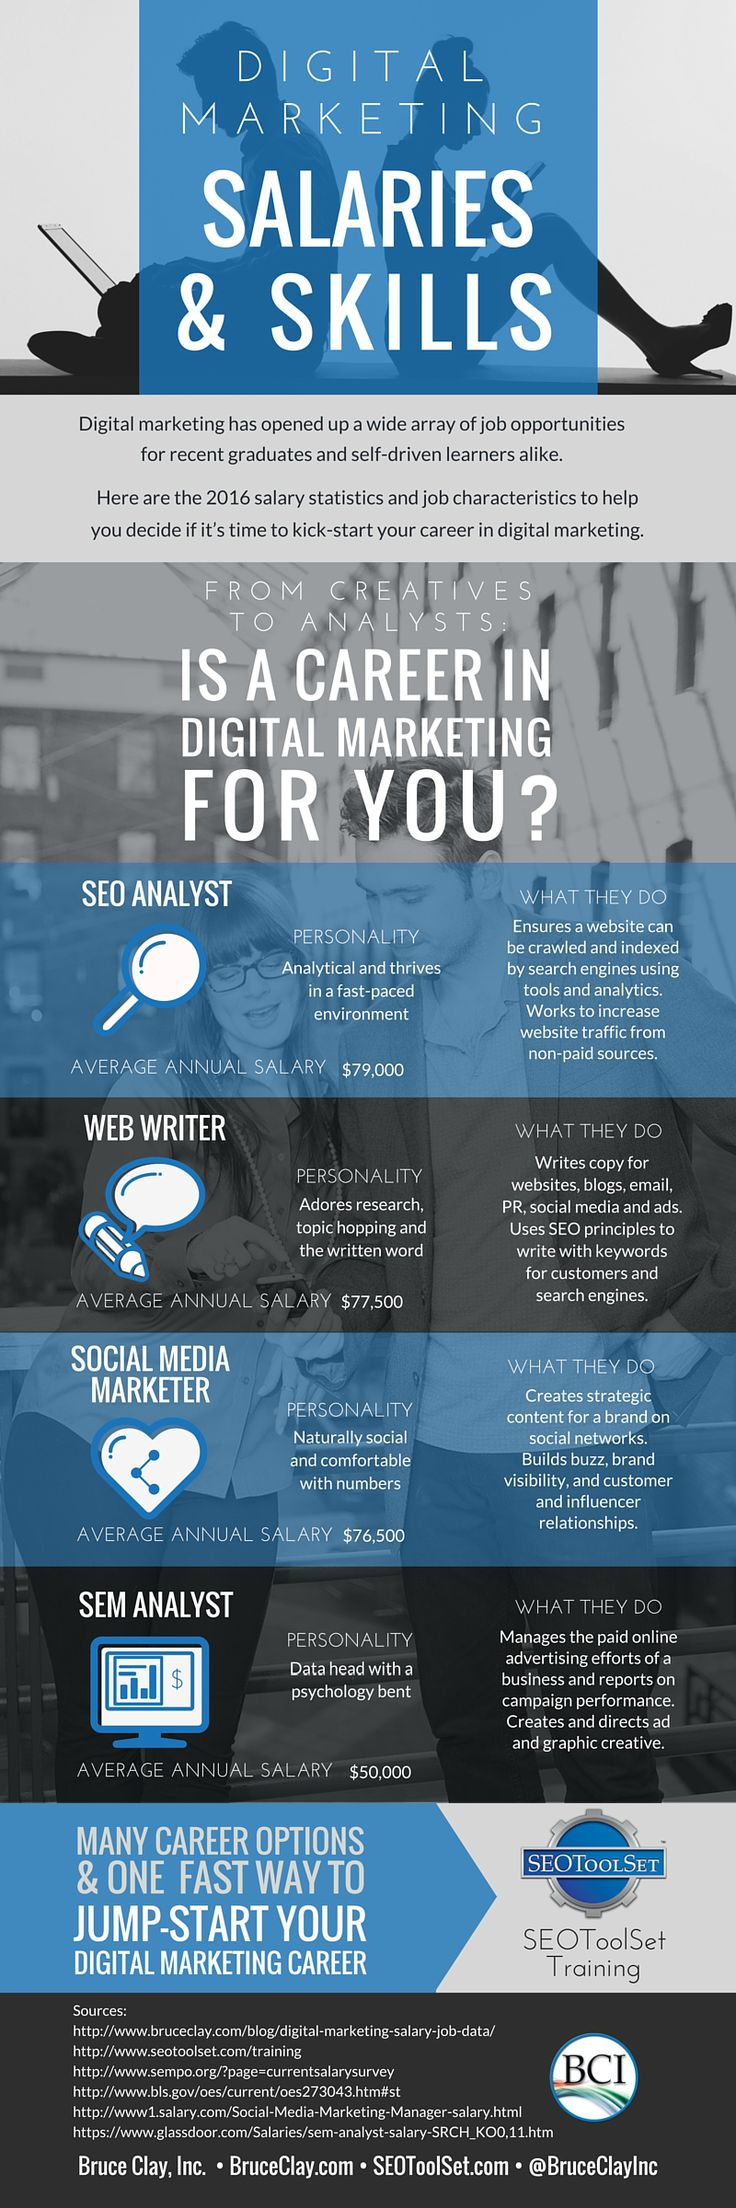 Best Digital Marketing Jobs Images On   Digital